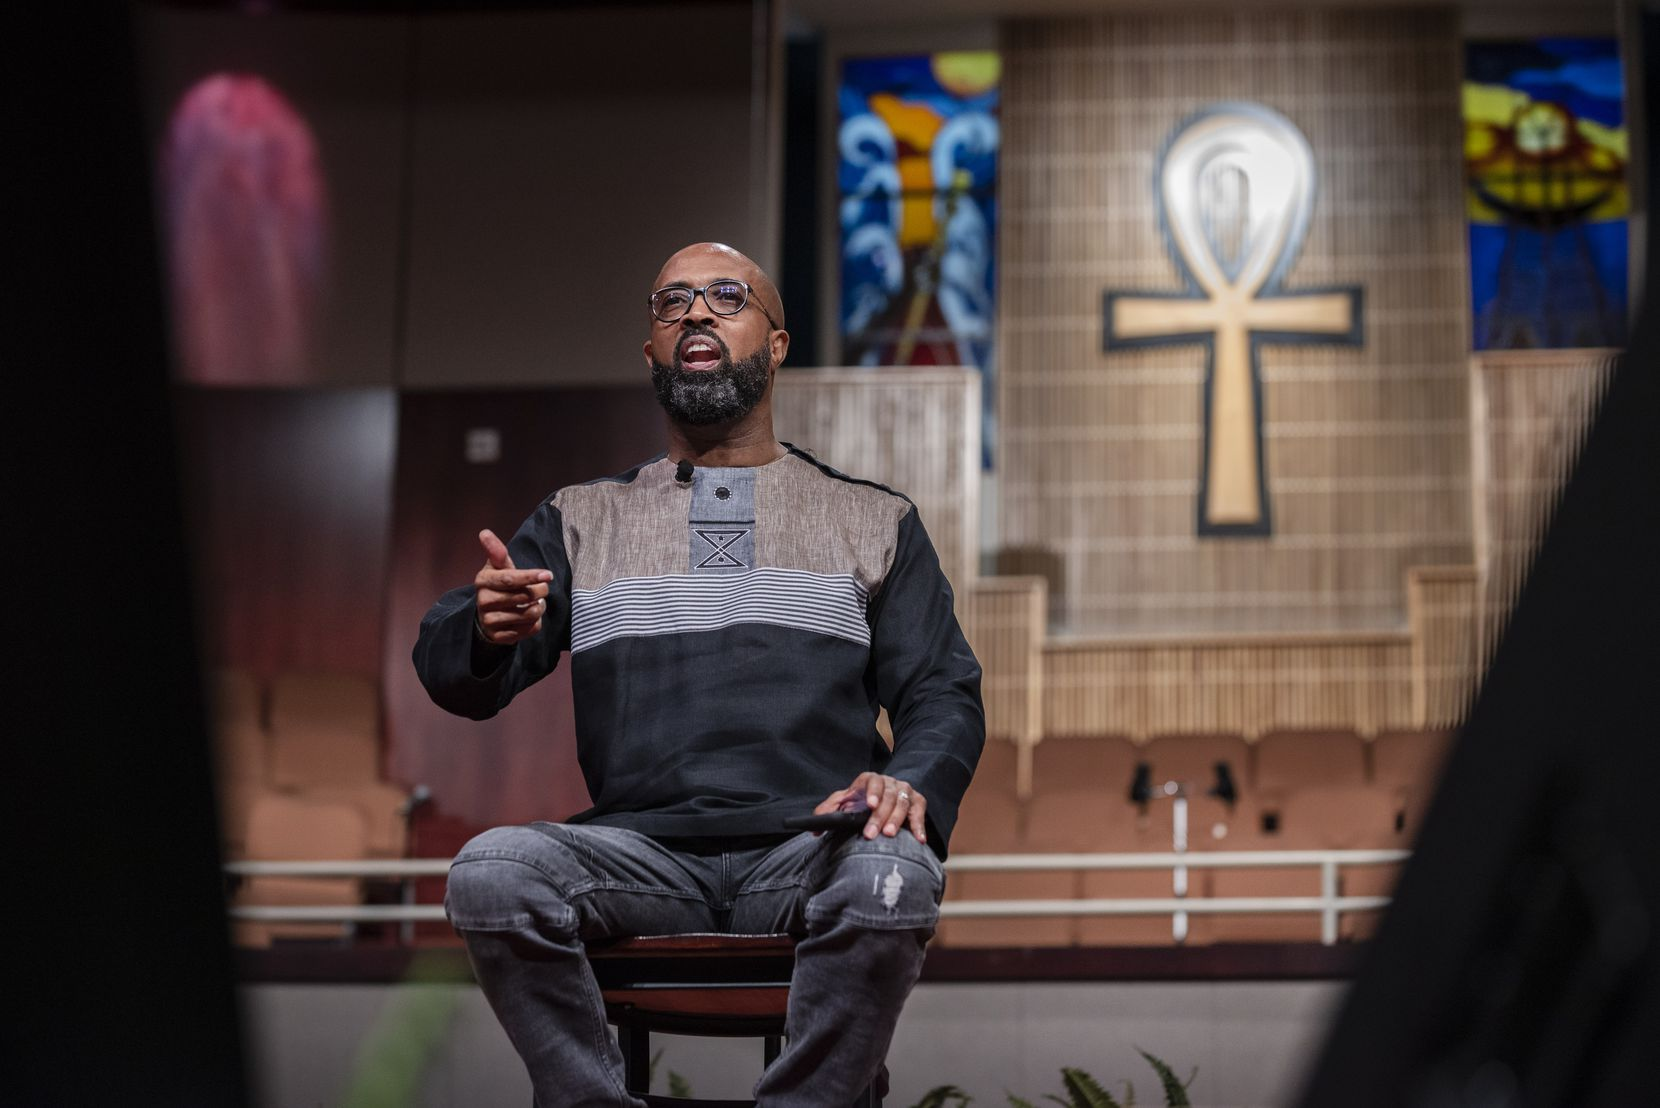 Senior Pastor Frederick D. Haynes, III introduces panelists for a virtual panel titled A Sanoka Moment: 100th Commemoration of the 1921 Tulsa Race Massacre, on Wednesday, June 02, 2021 at Friendship-West Baptist Church in Dallas.